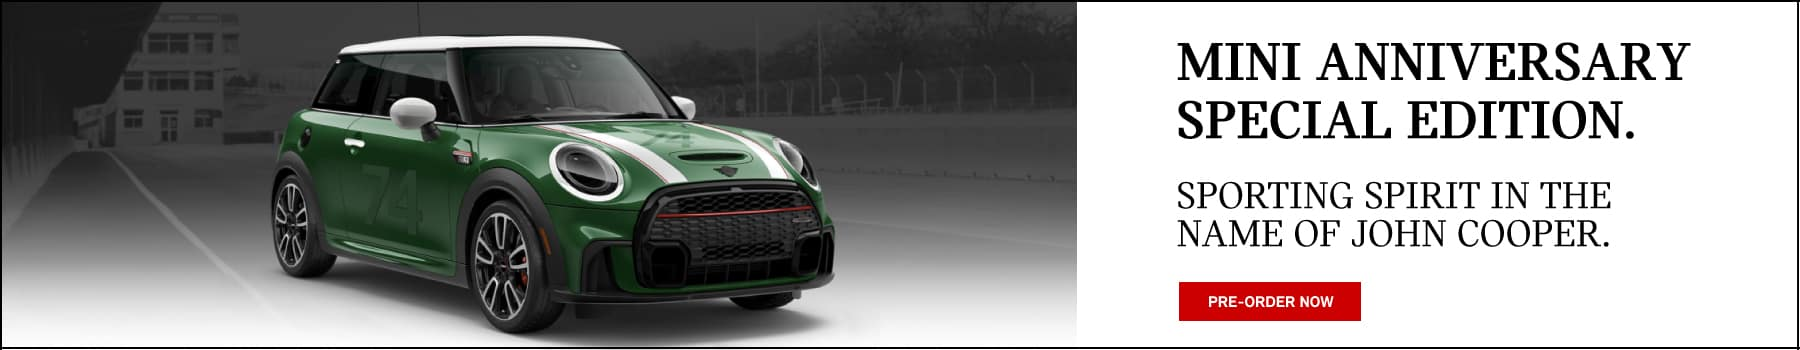 MINI Anniversary Special Edition. Sporting spirit in the name of John Cooper. Click to pre-order now! Image shows the new MINI anniversary edition.